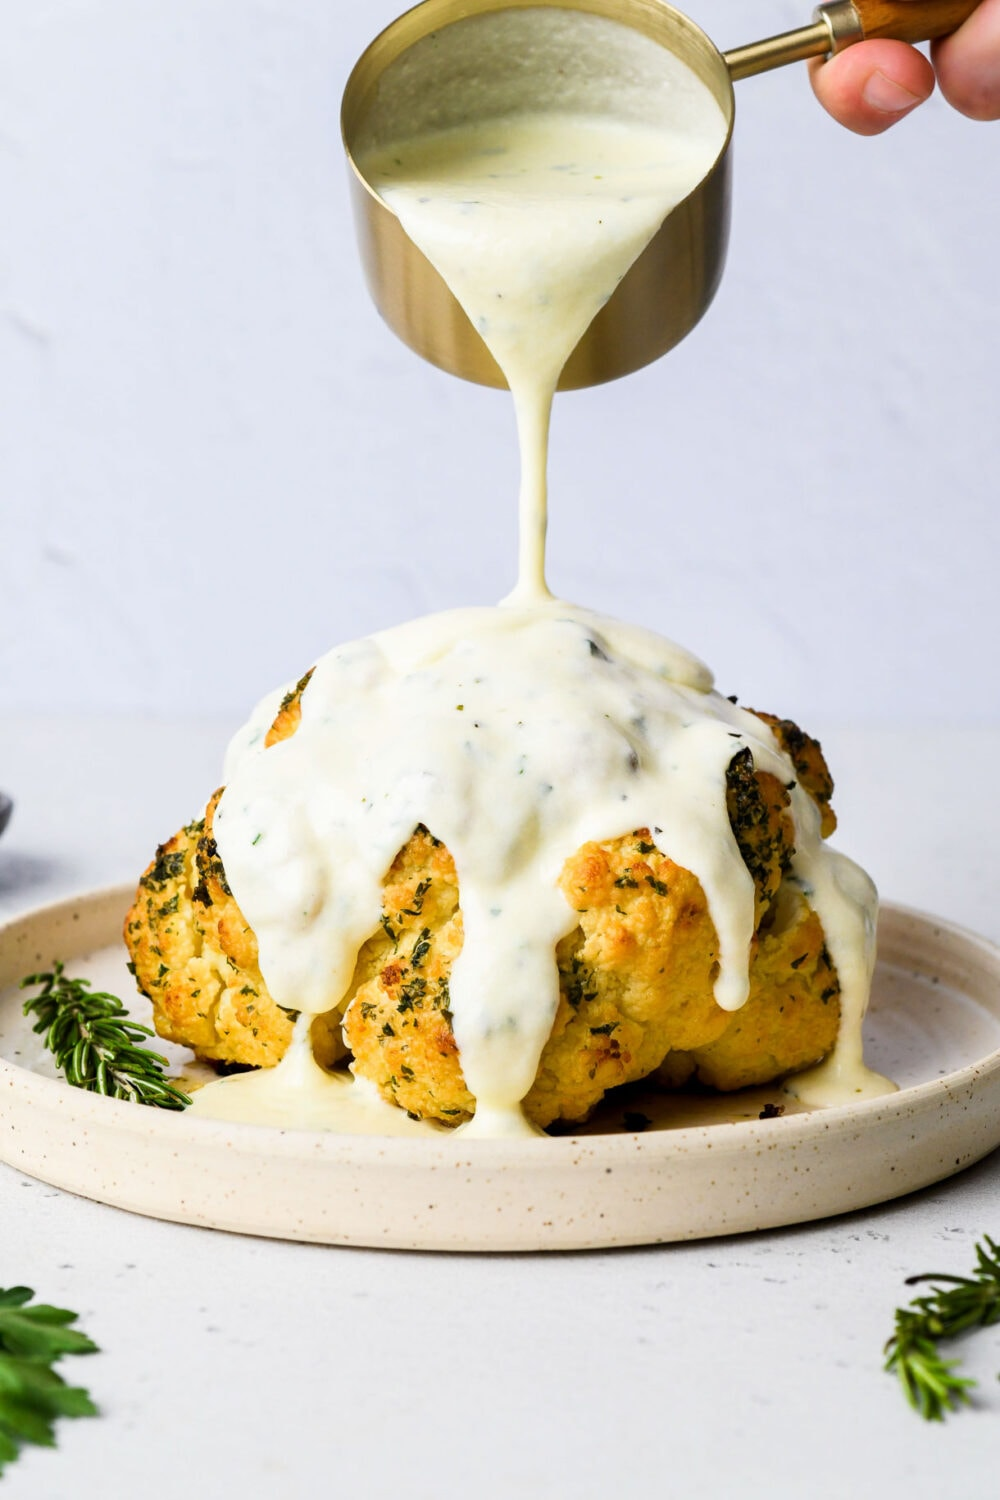 pouring cheese sauce over roasted cauliflower